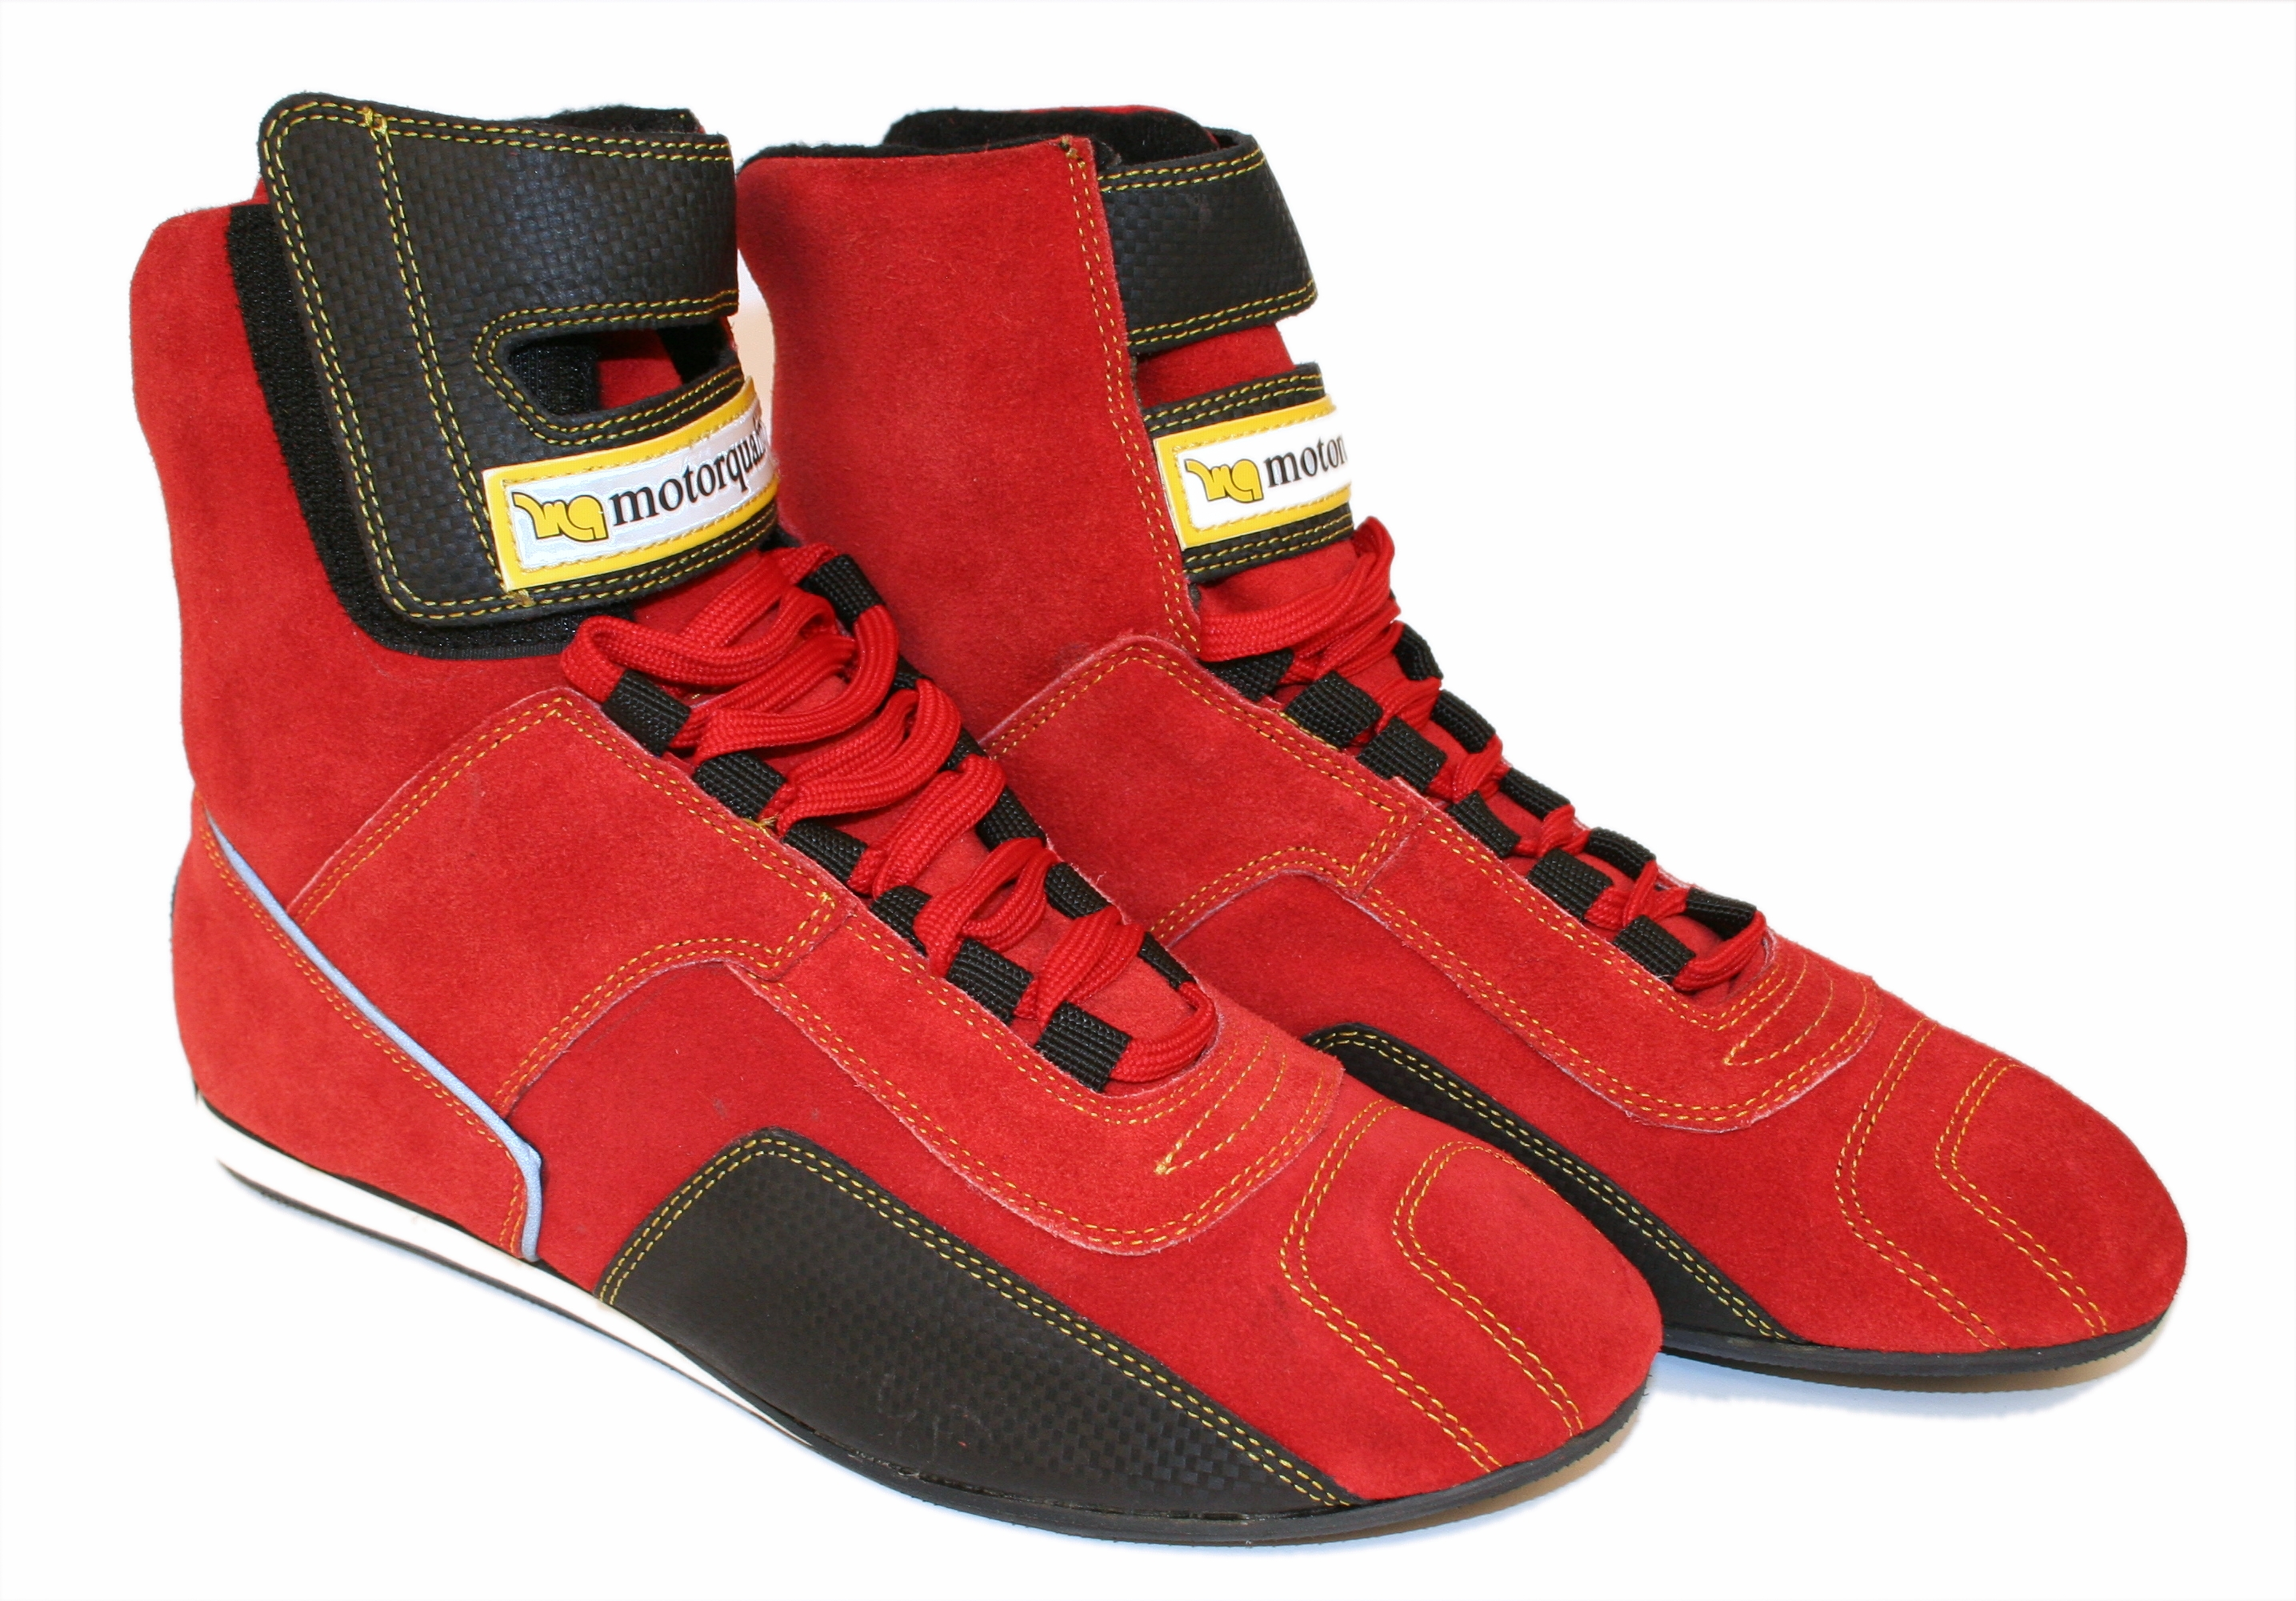 MotorQuality Shoes [Closeout!]